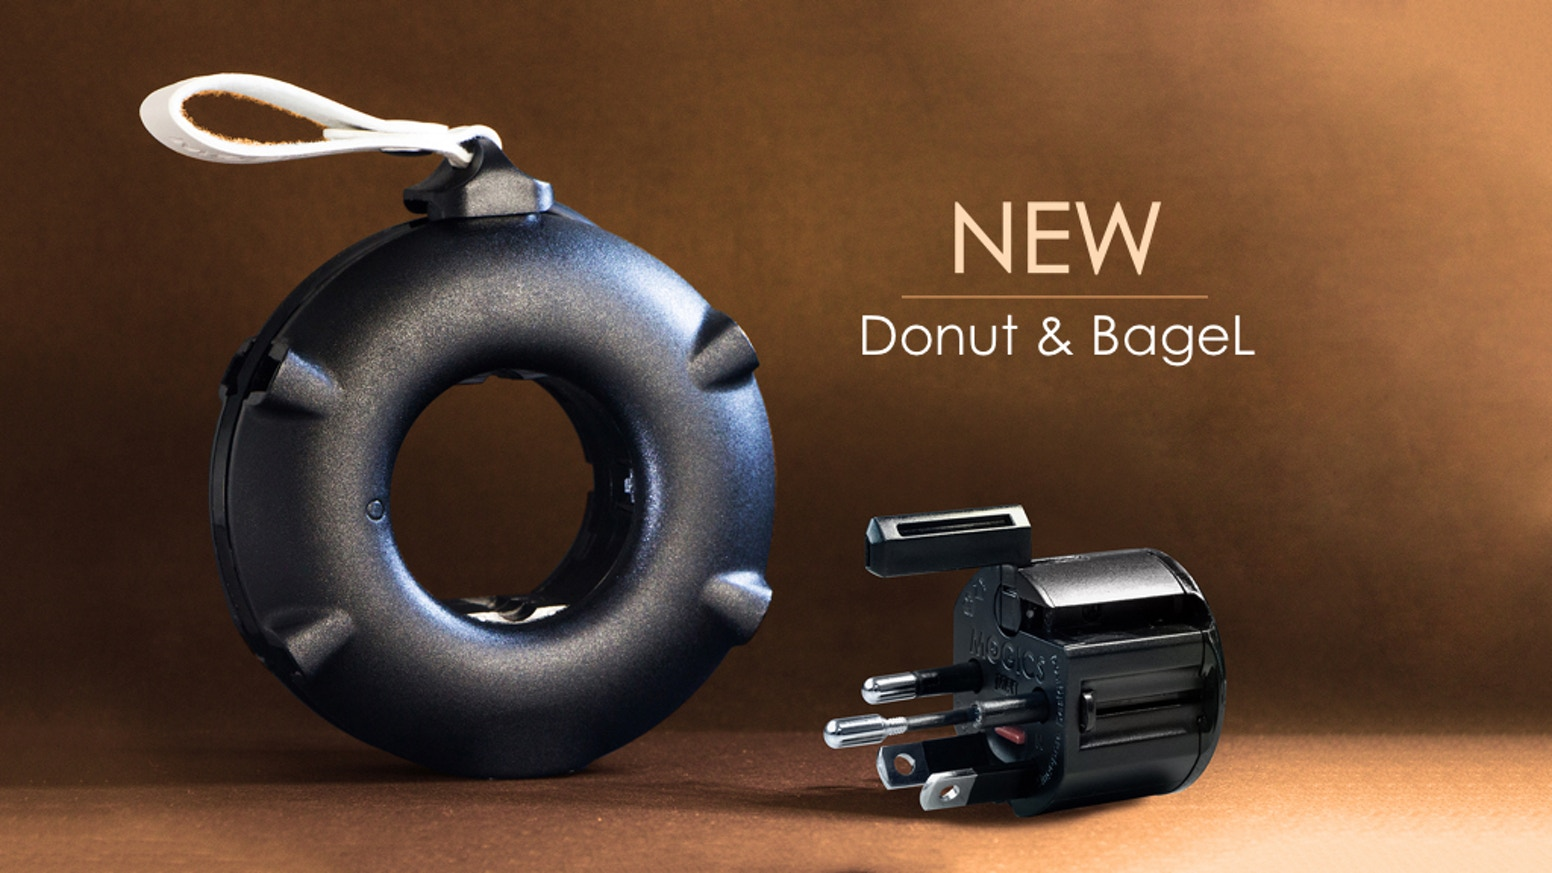 World's Only Travel Power Strip -- Features Upgraded. New MOGICS Adapter and More Surprises. Customize Your Own Donut & Bagel!